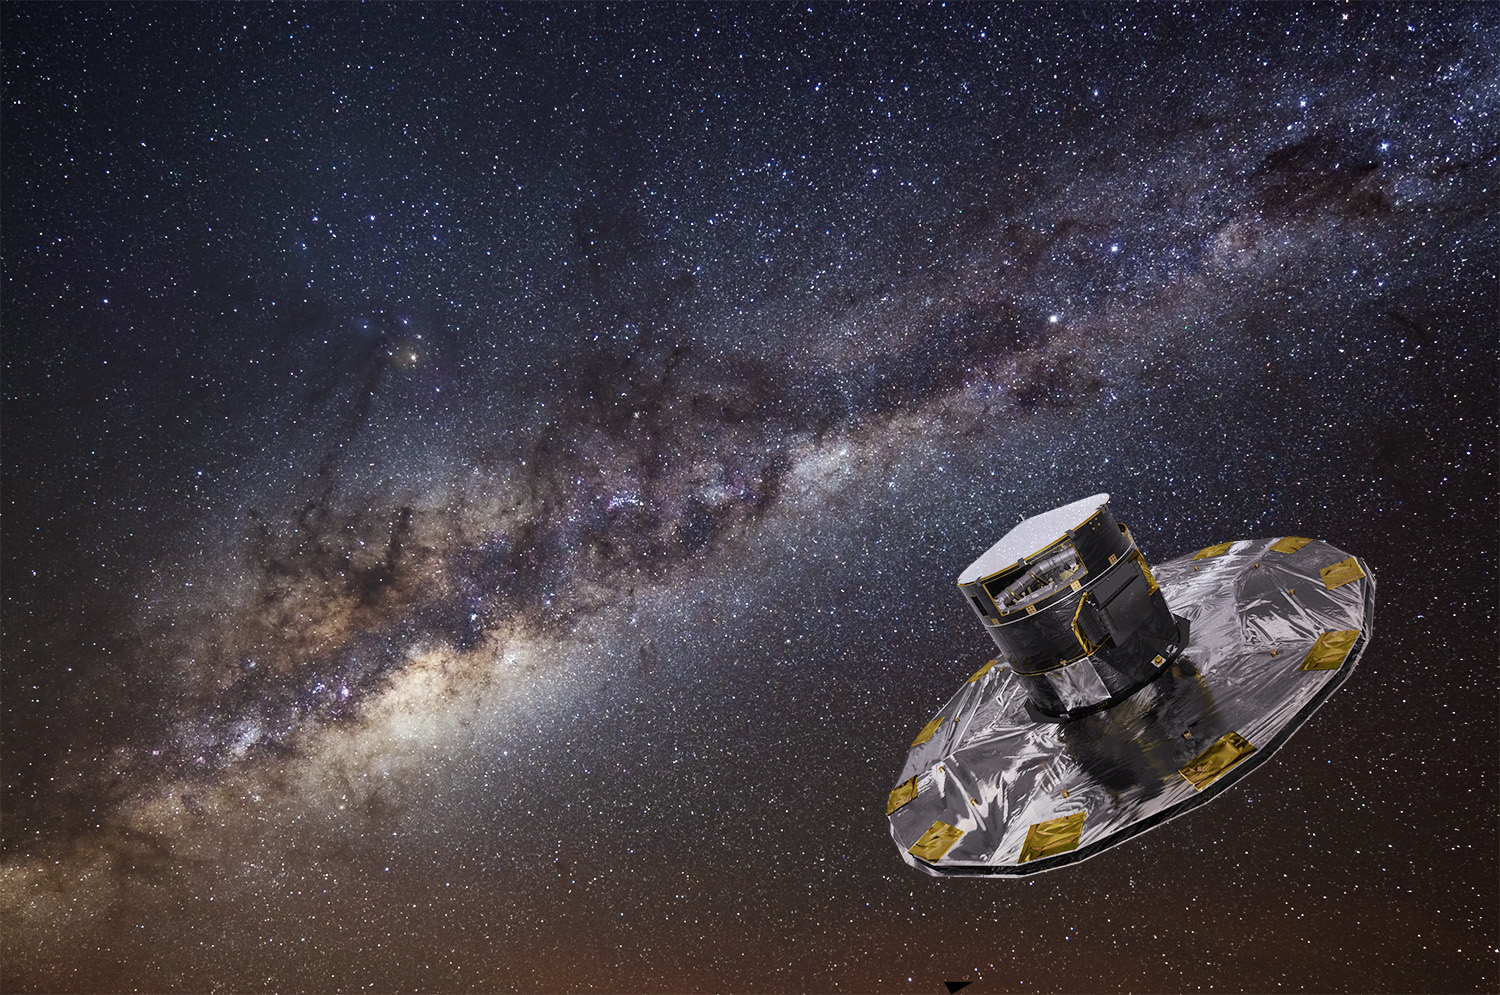 Gaia_mapping_the_stars_of_the_Milky_Way.jpg